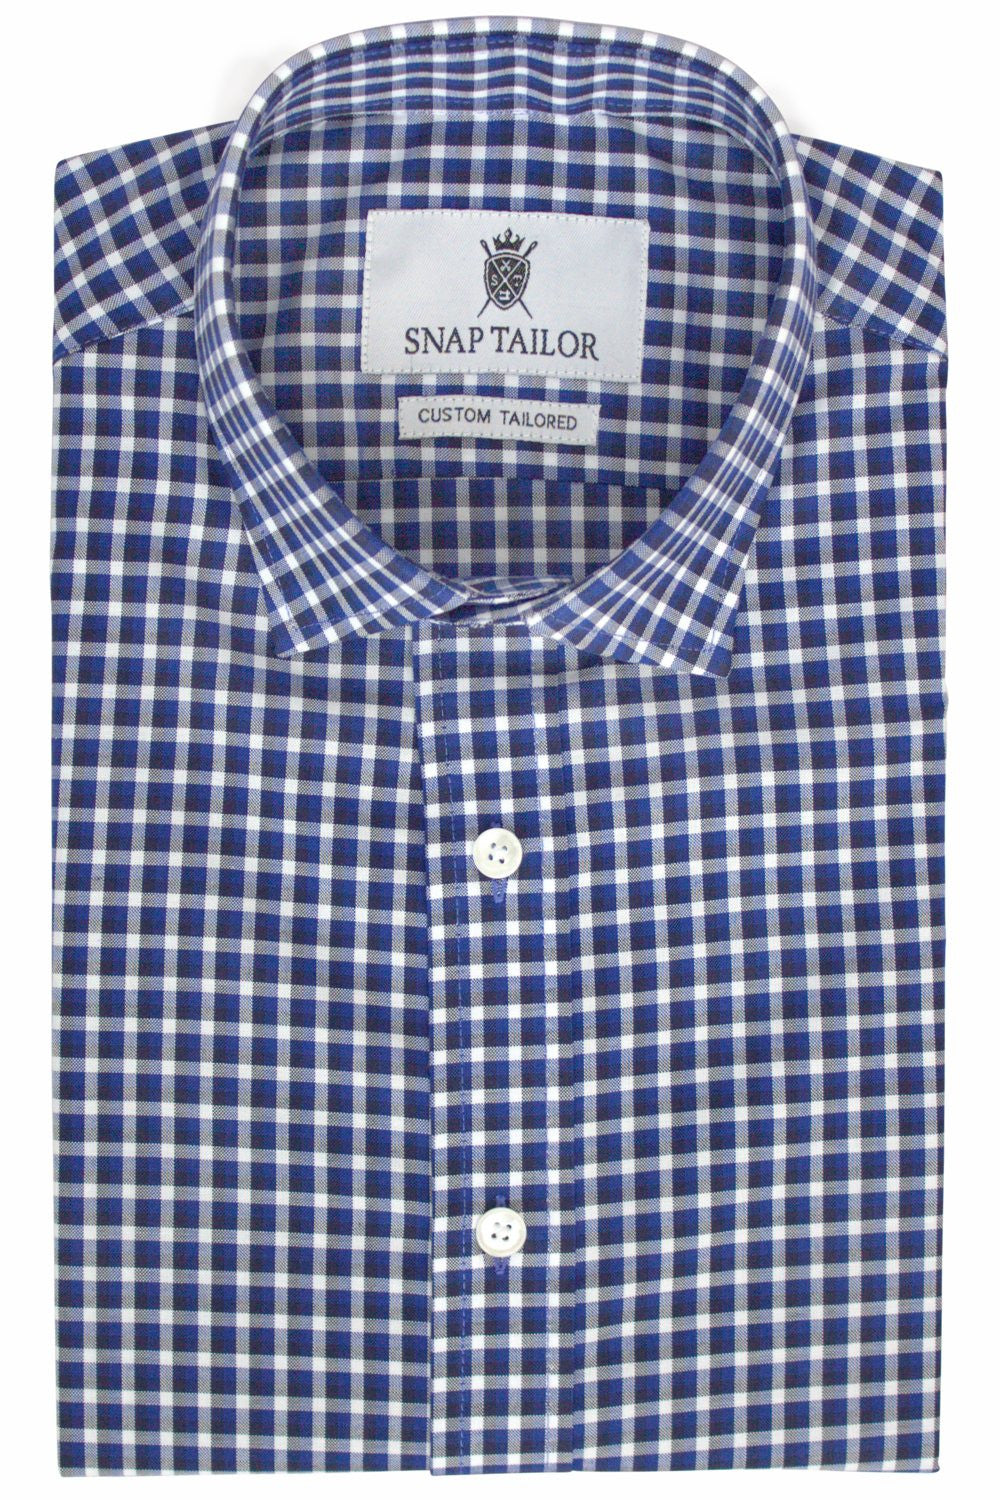 Photo of Multi Check Casual Shirt in Blue, Black ,and White